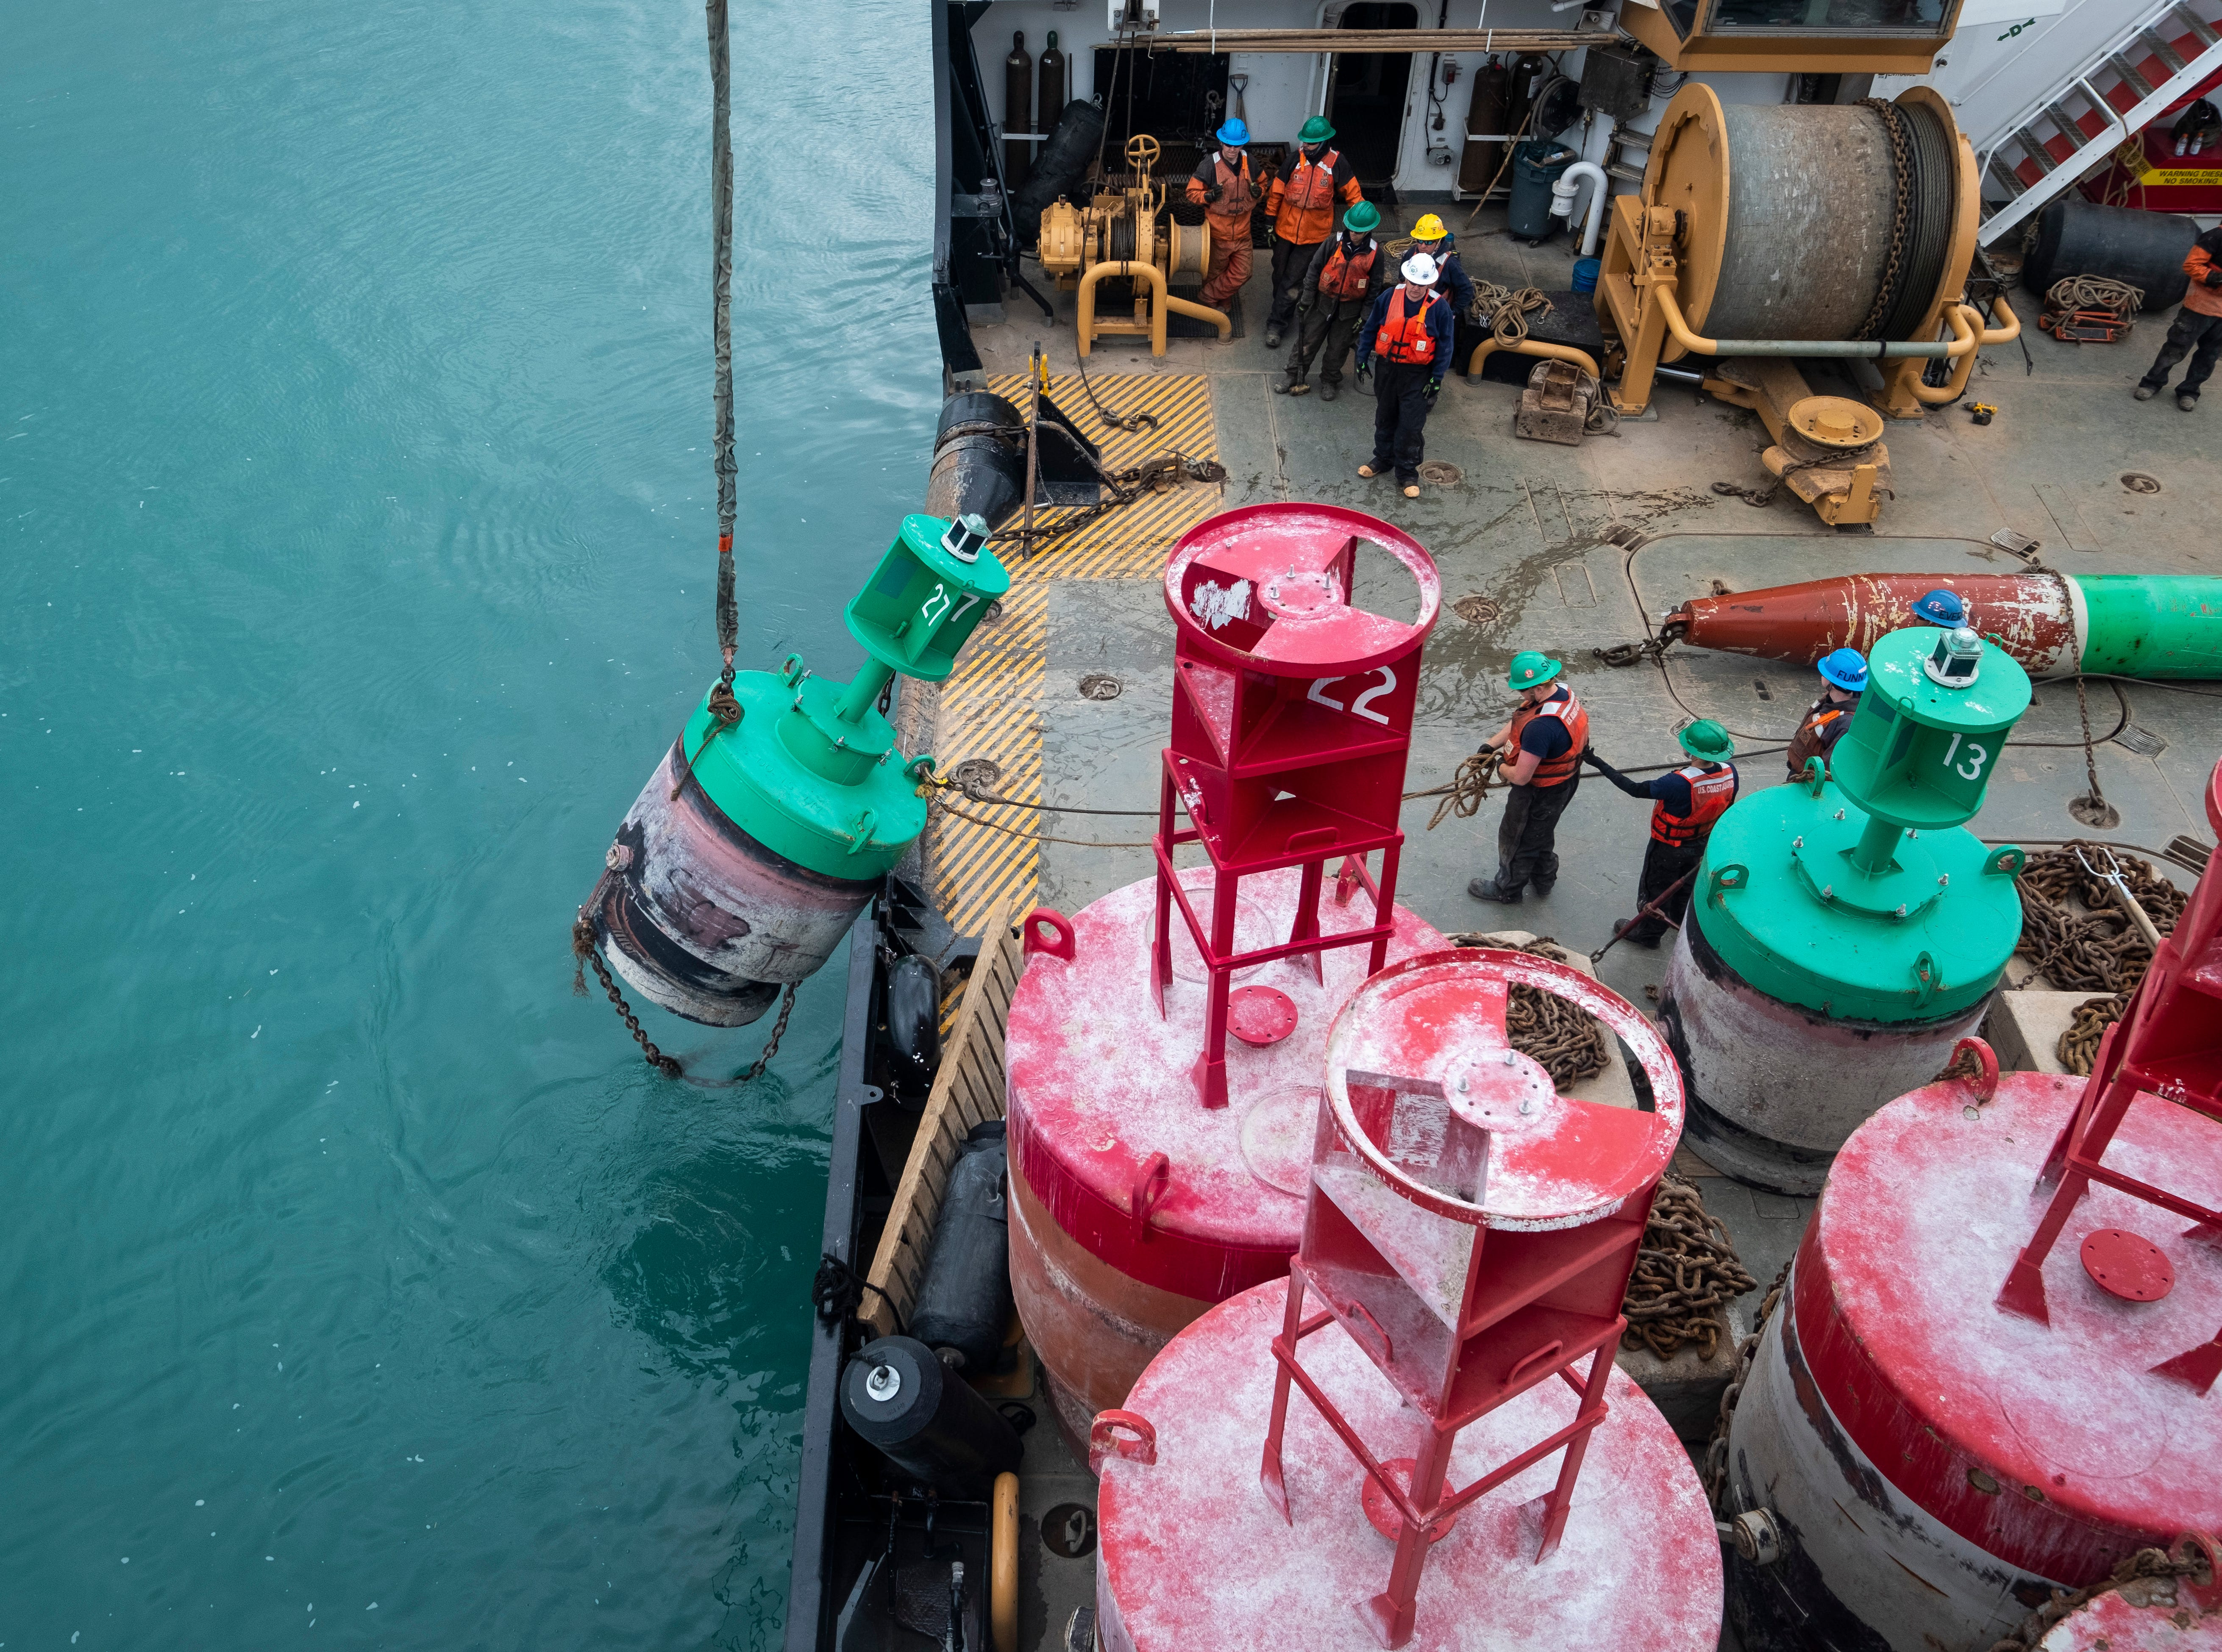 After the first winter buoy of the day has been removed from the water, crews work to set a summer buoy into the river in its place Thursday morning, April 25, 2019. Winter buoys are designed to be able to ride under the ice and handle the pressure of ice pressing against its hull, while summer buoys are illuminated and easier to spot. Each buoy is attached to a stone of varying weight that sits on the bottom of the waterway.